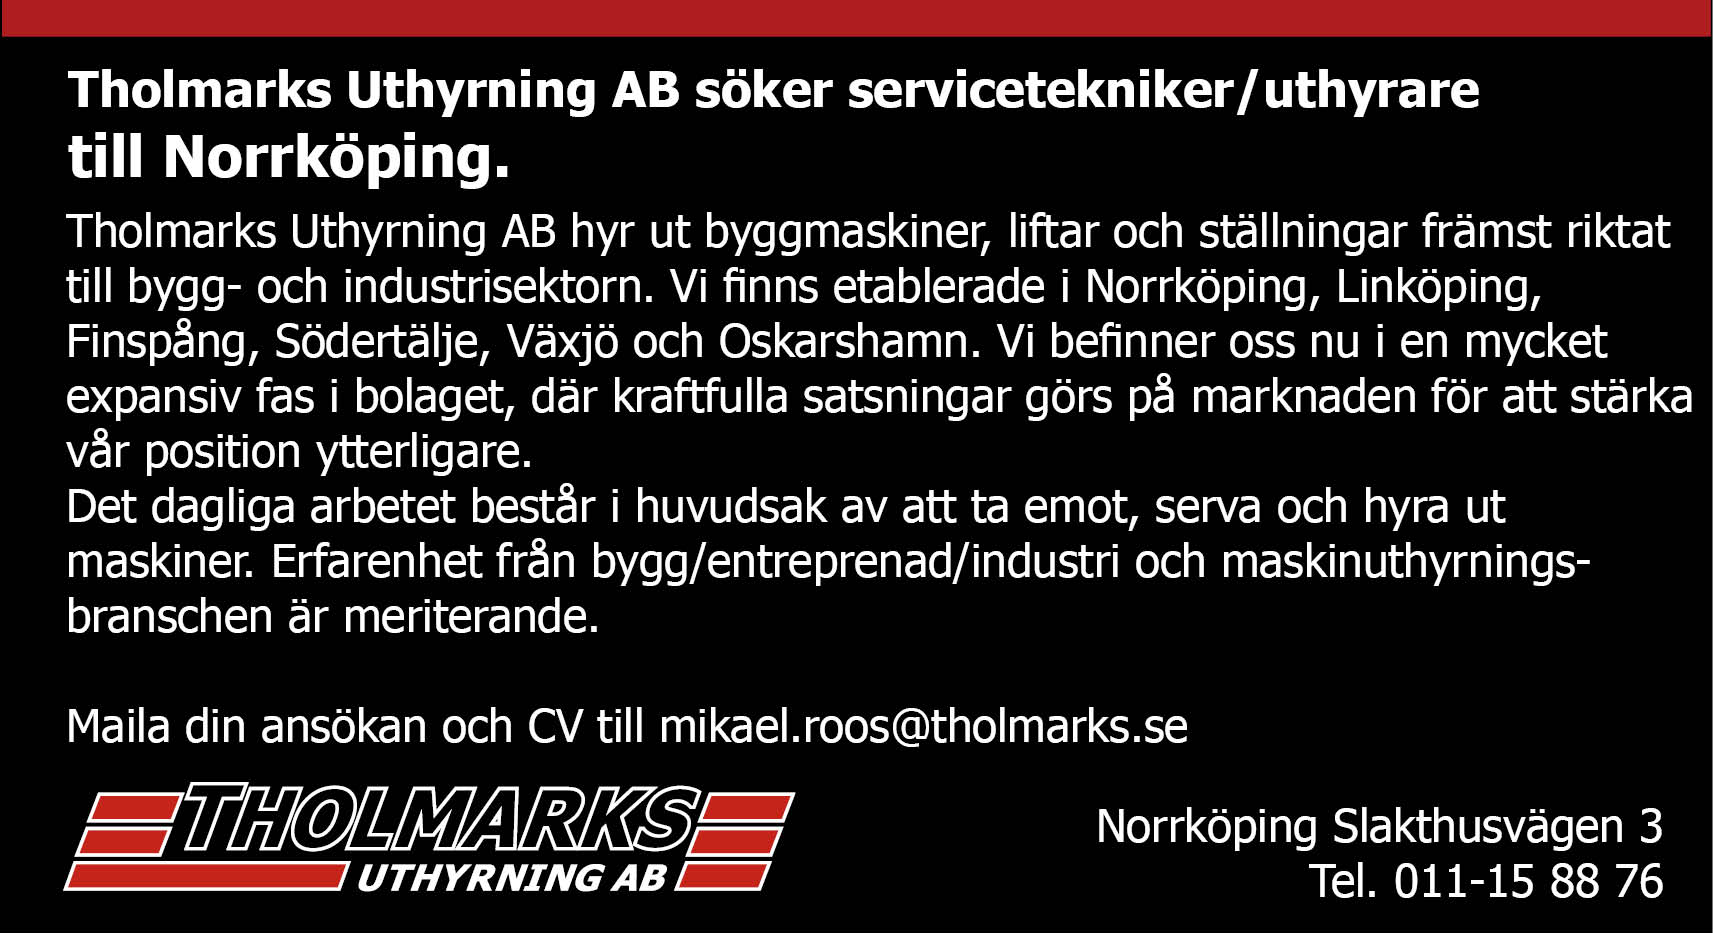 annonsmall_norrkoping2_cs6